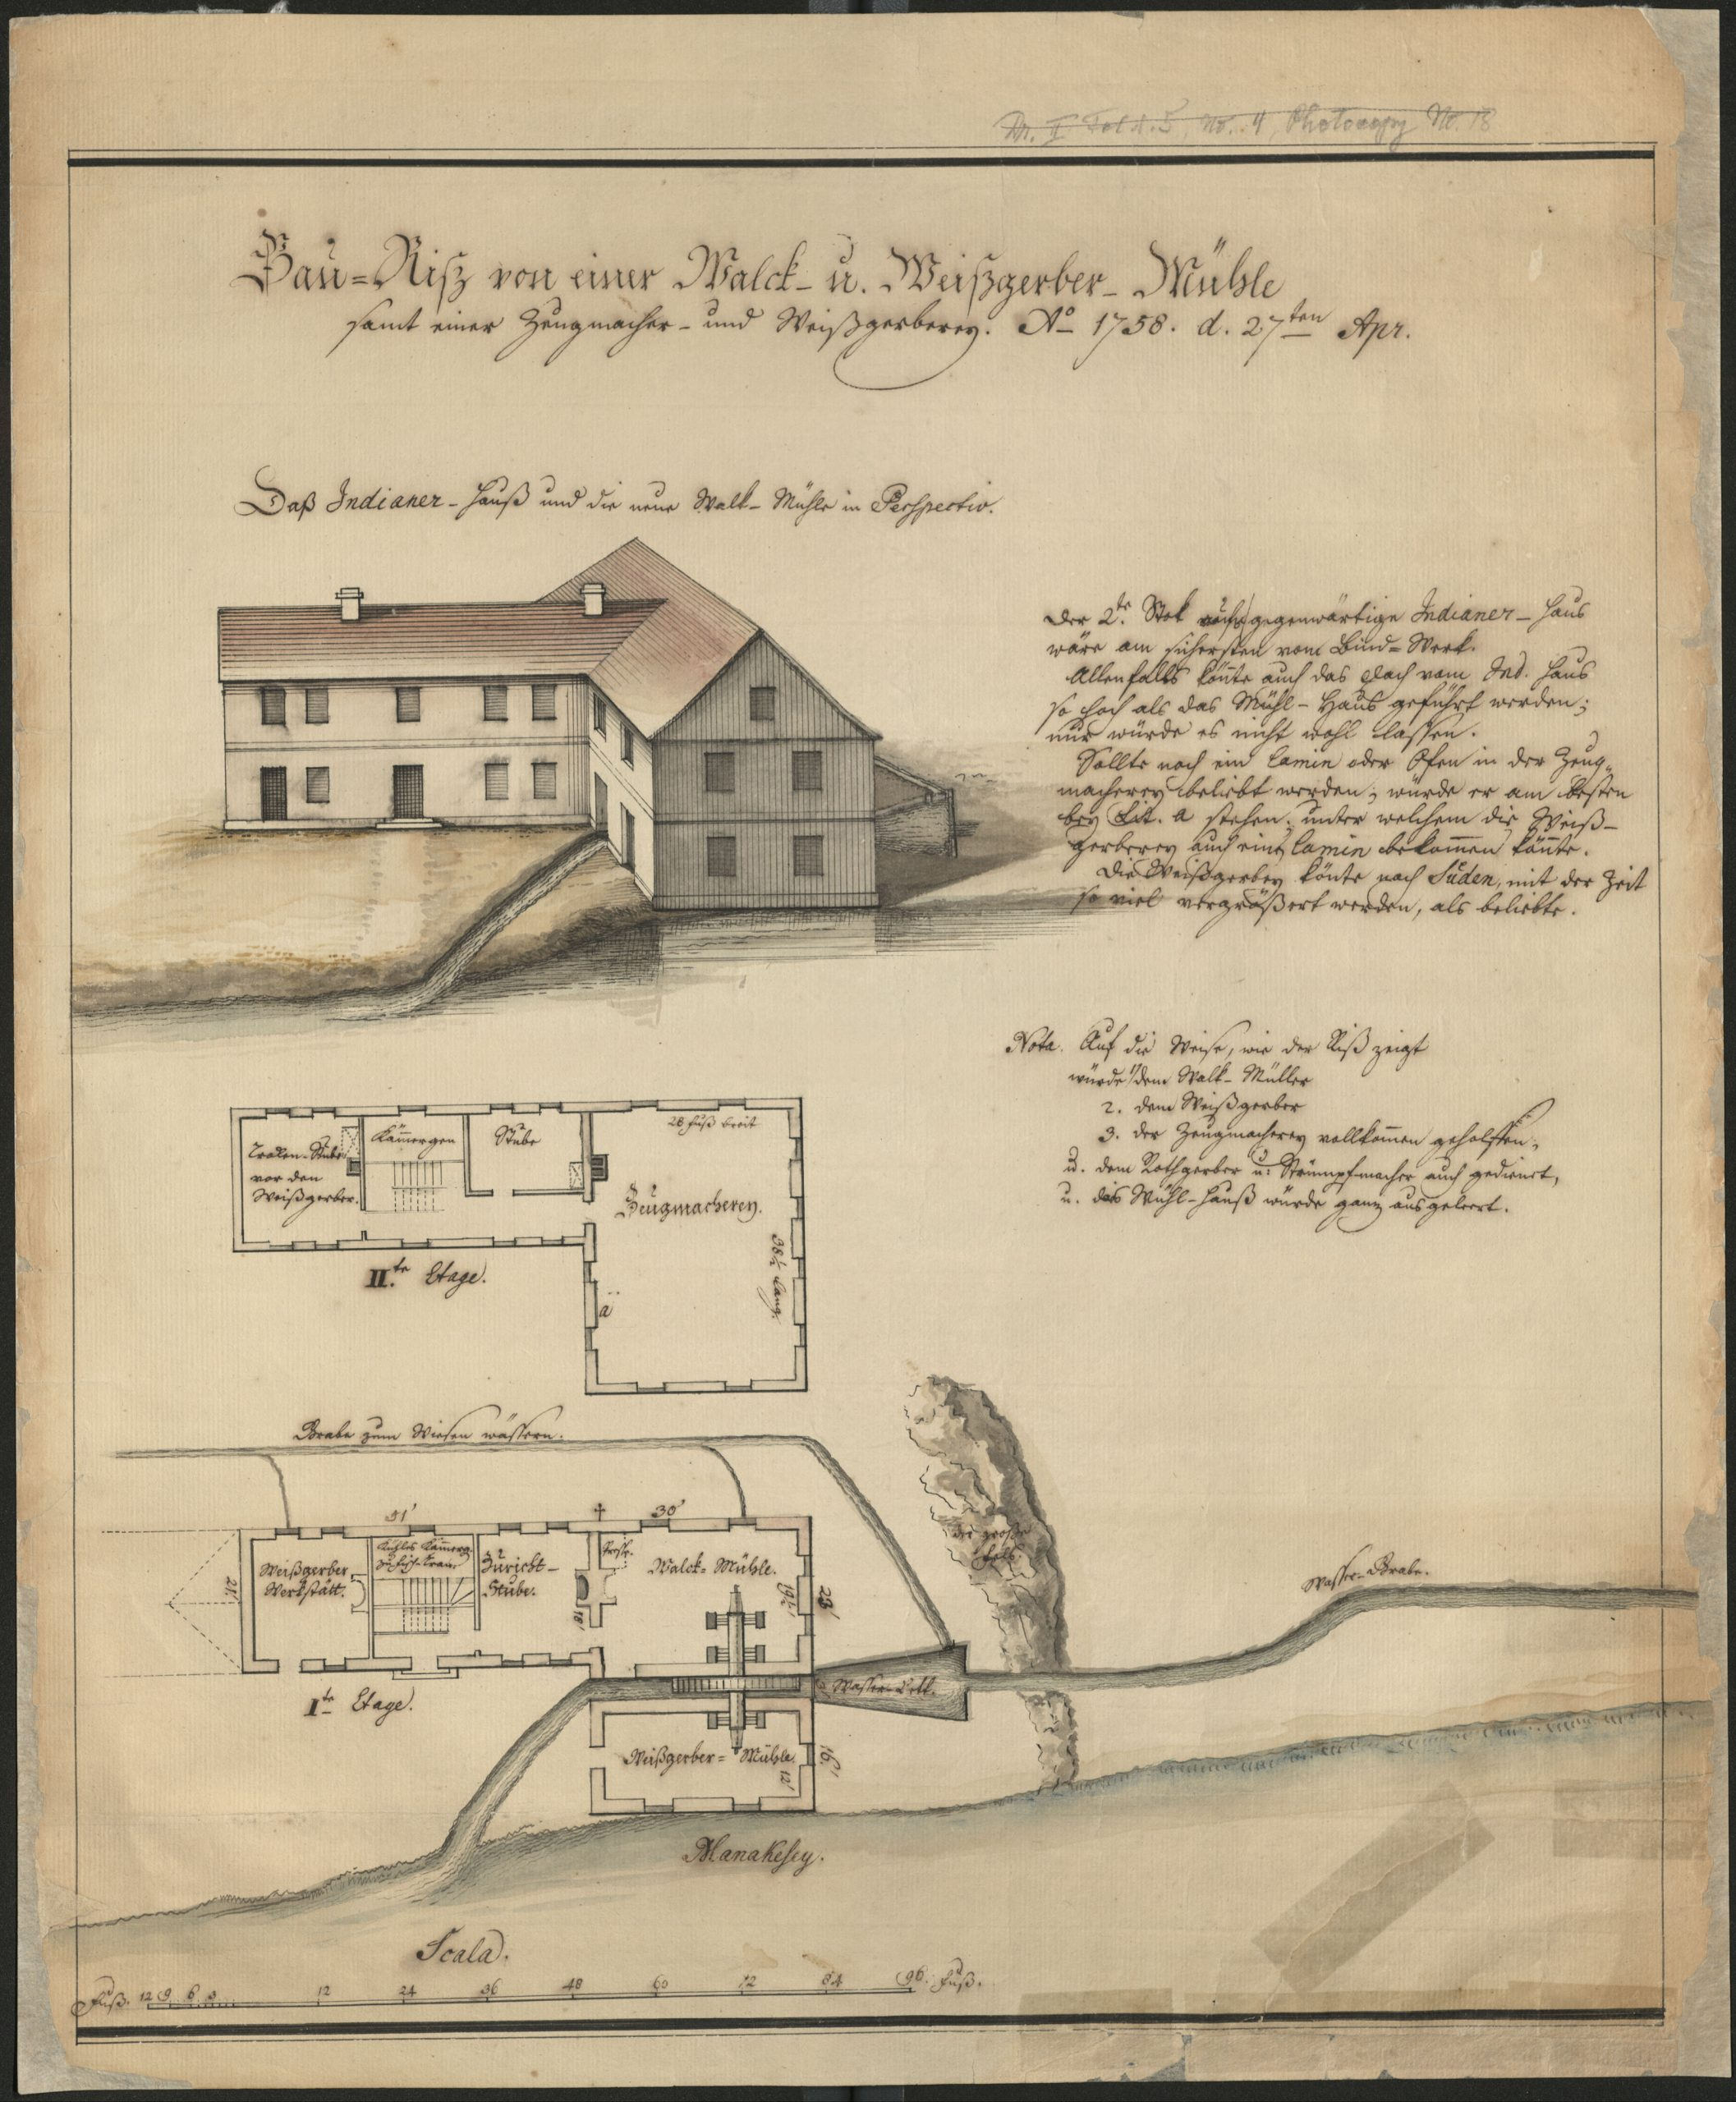 Digital Collection Spotlight #23: Proposed Mill